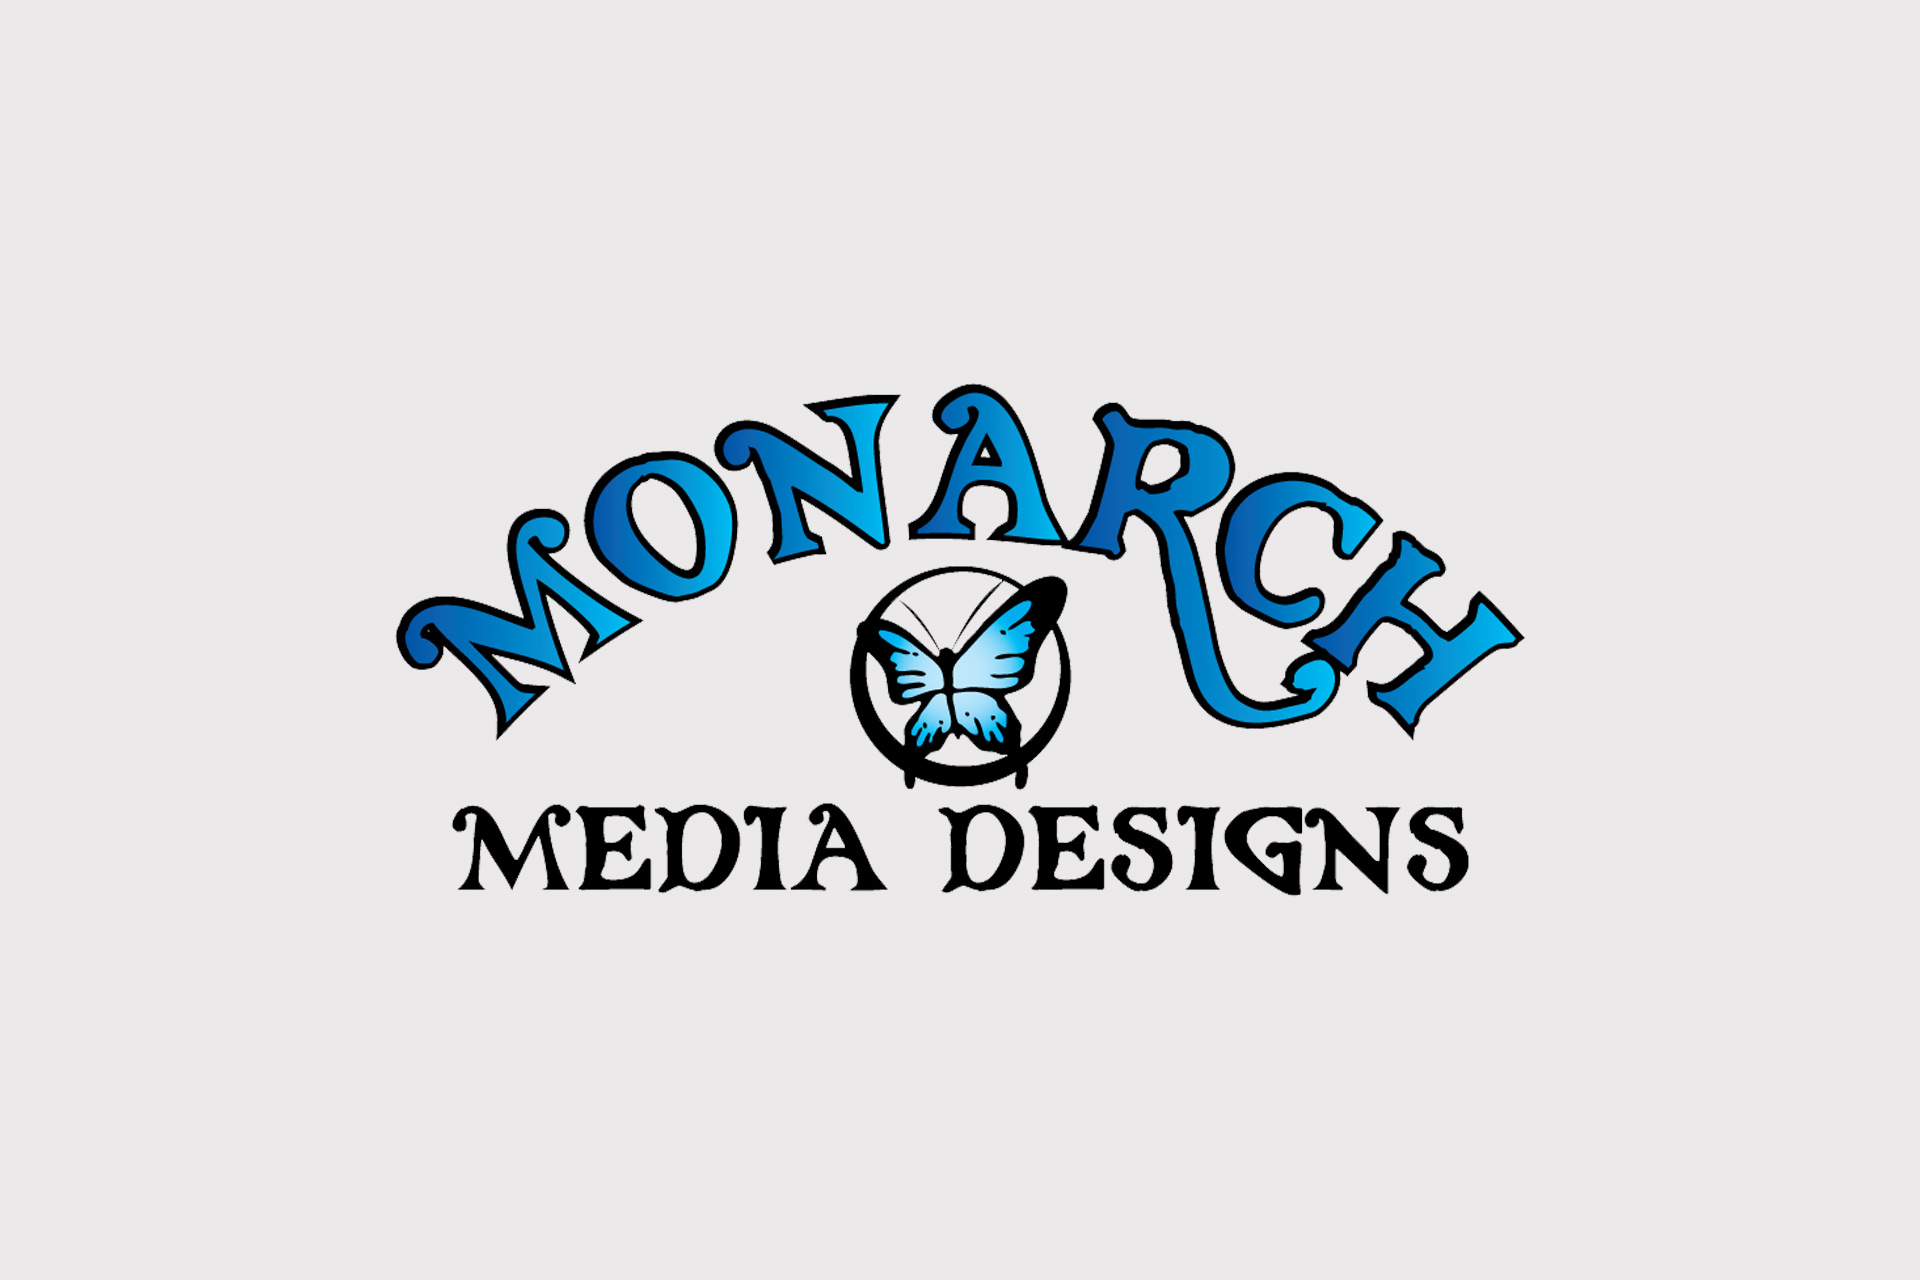 Monarch Media Designs